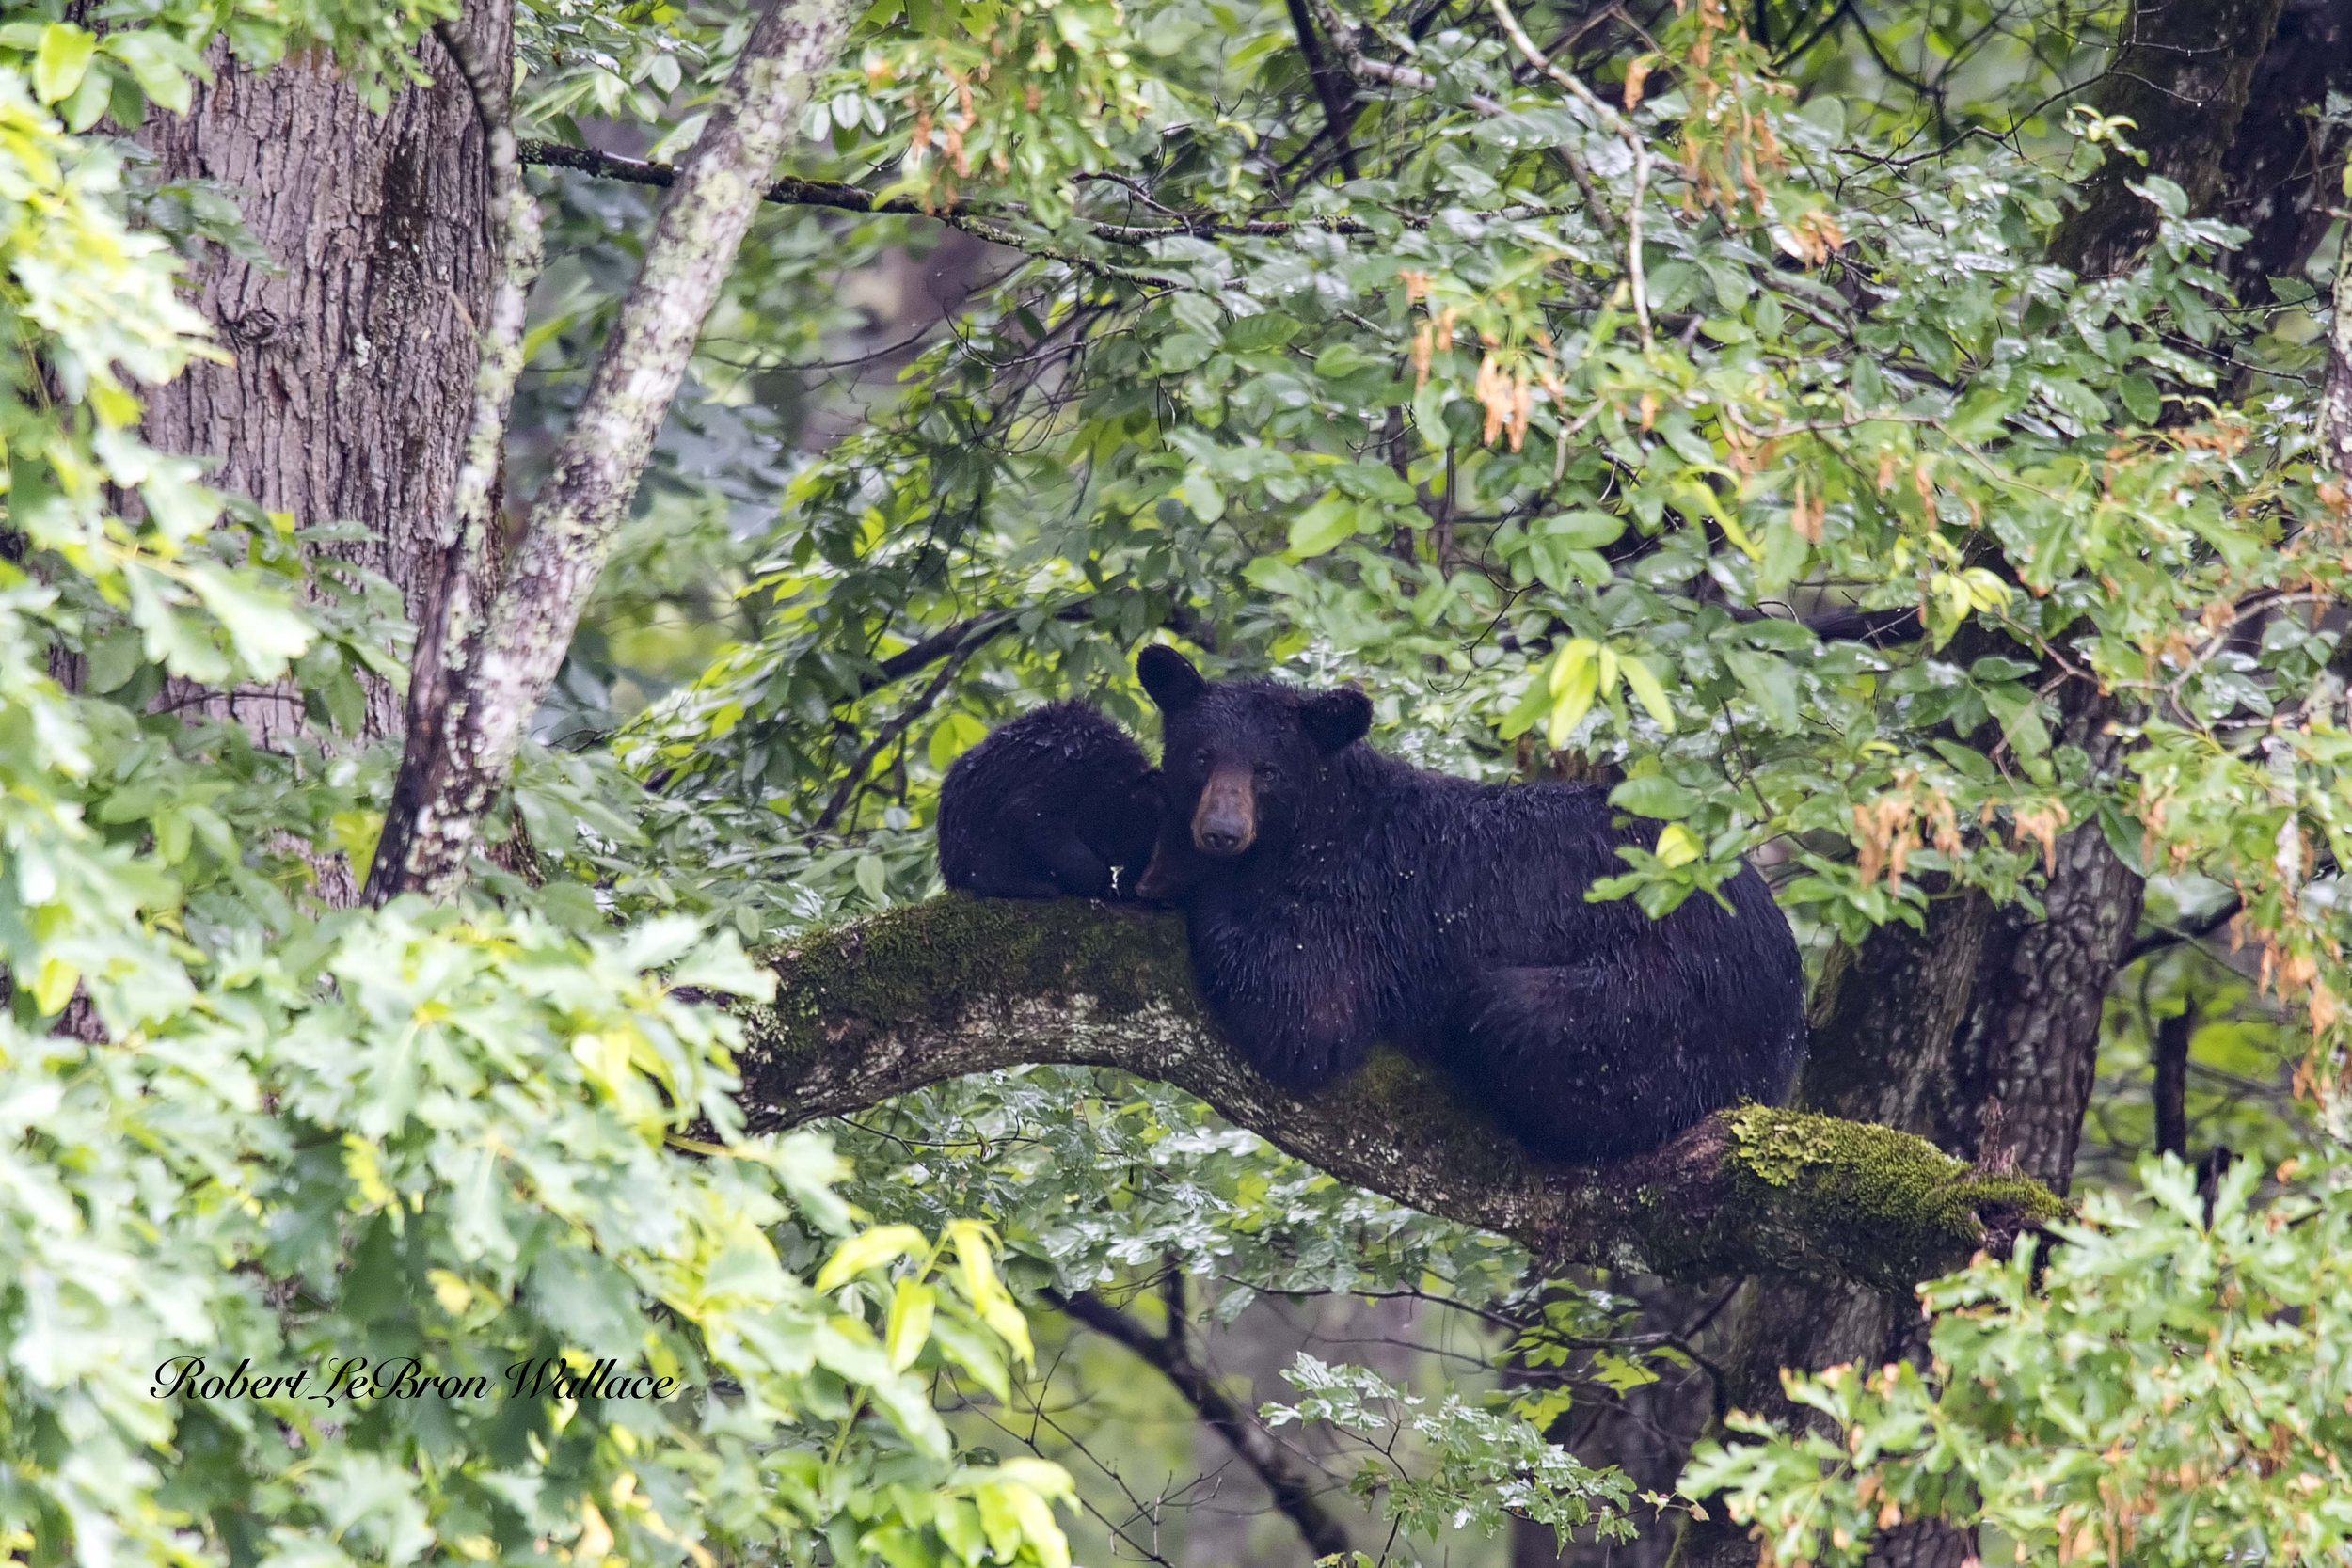 NEITHER BIG MAMA BLACK BEAR NOR HER CUBS WERE BOTHERED BY THE DOWNPOUR (OR THE SOAKING WET PHOTOGRAPHER) IMAGE: ROBERT LEBRON WALLACE